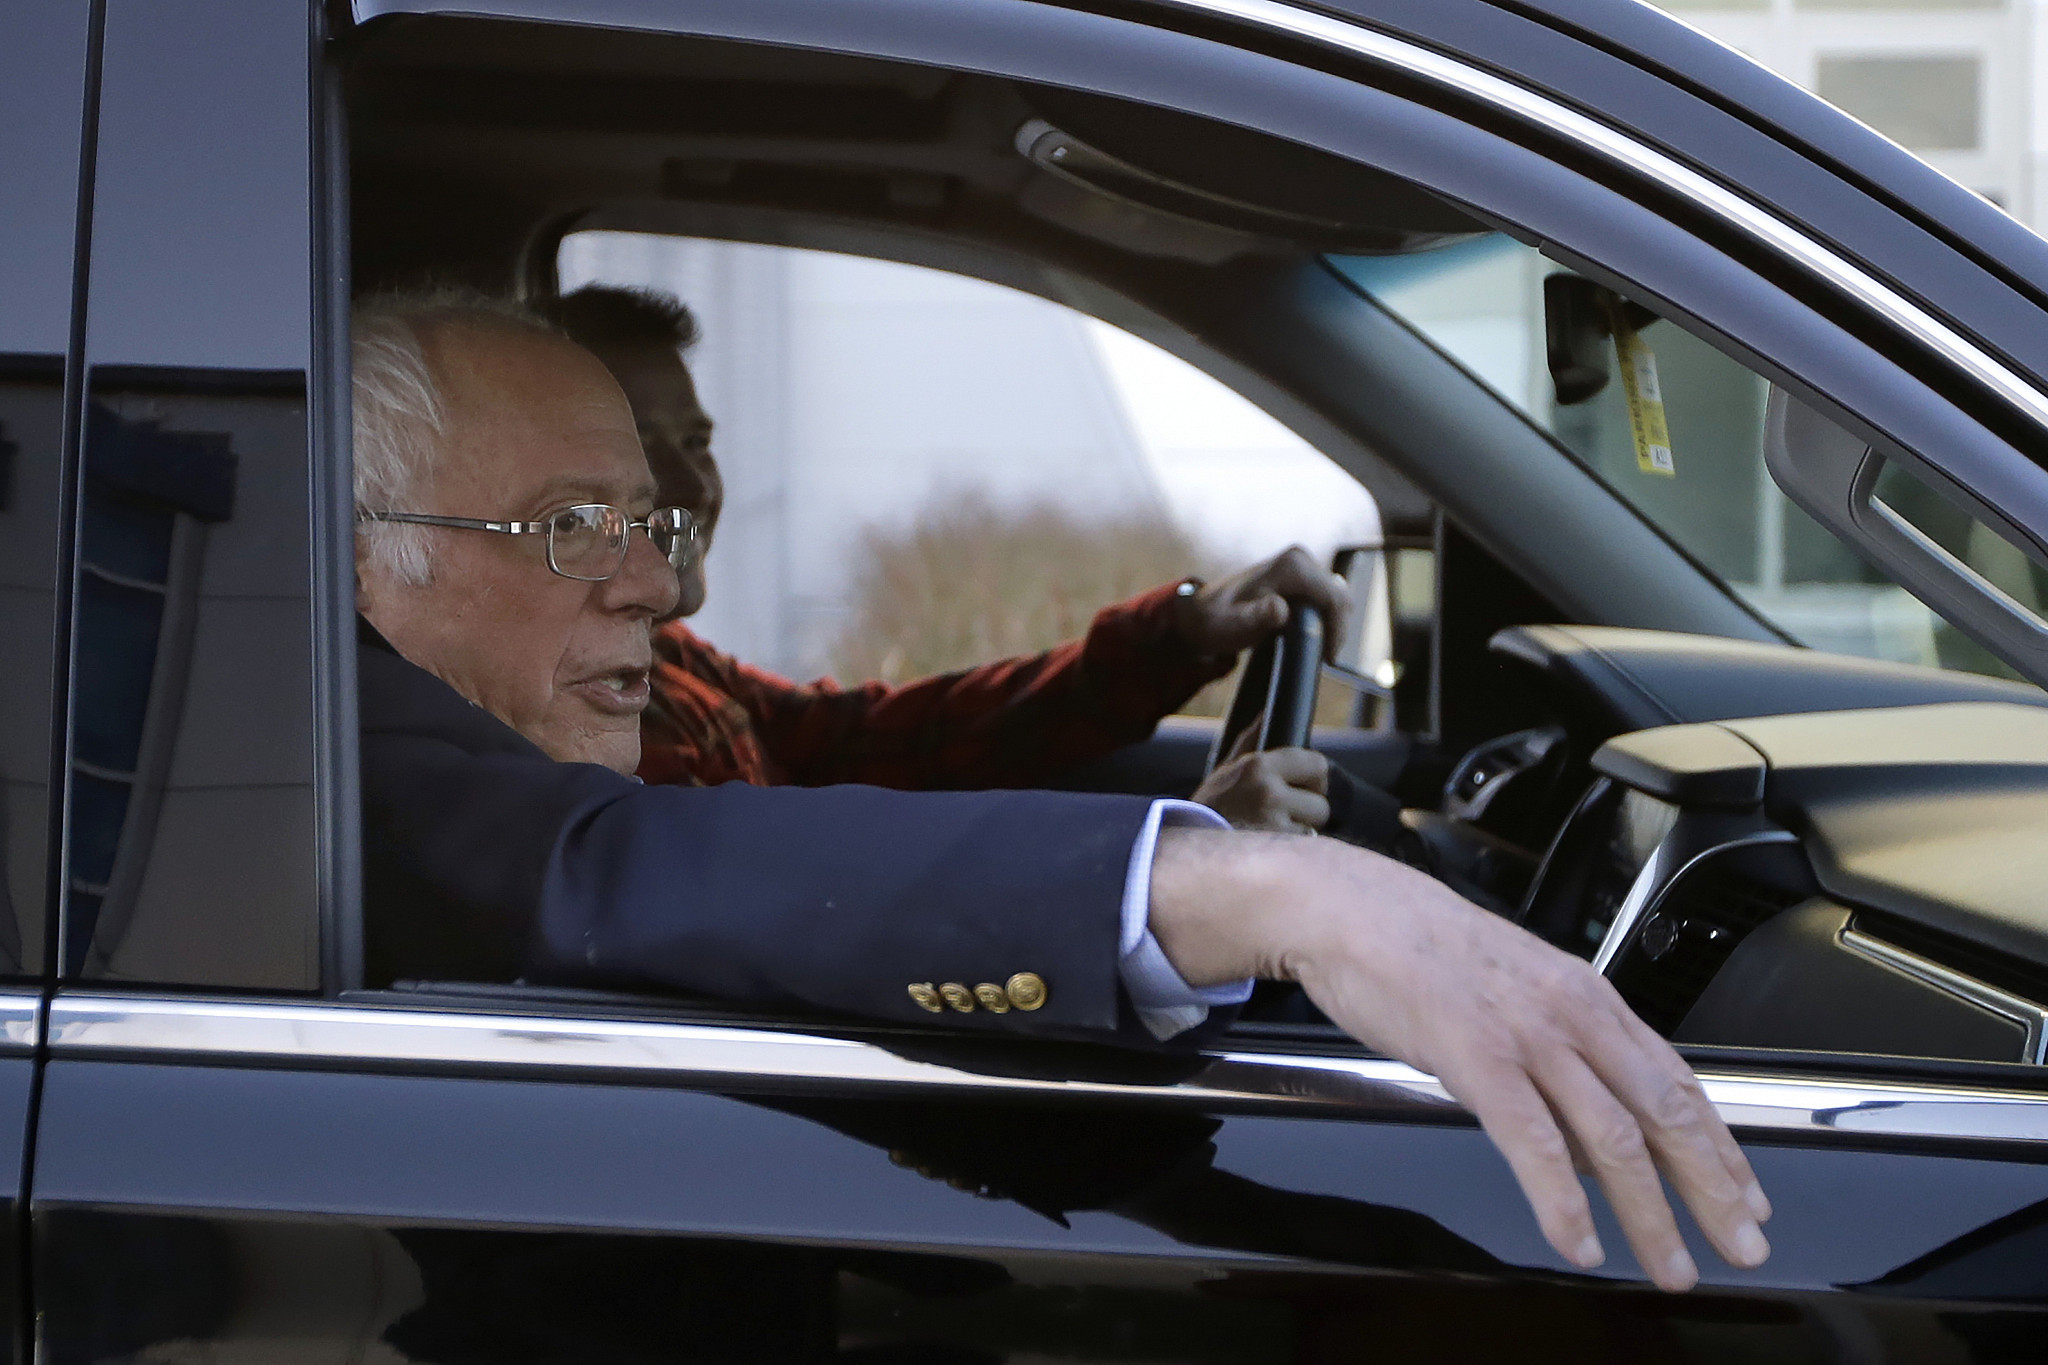 Bernie Sanders says he may slow down campaigning pace after heart attack